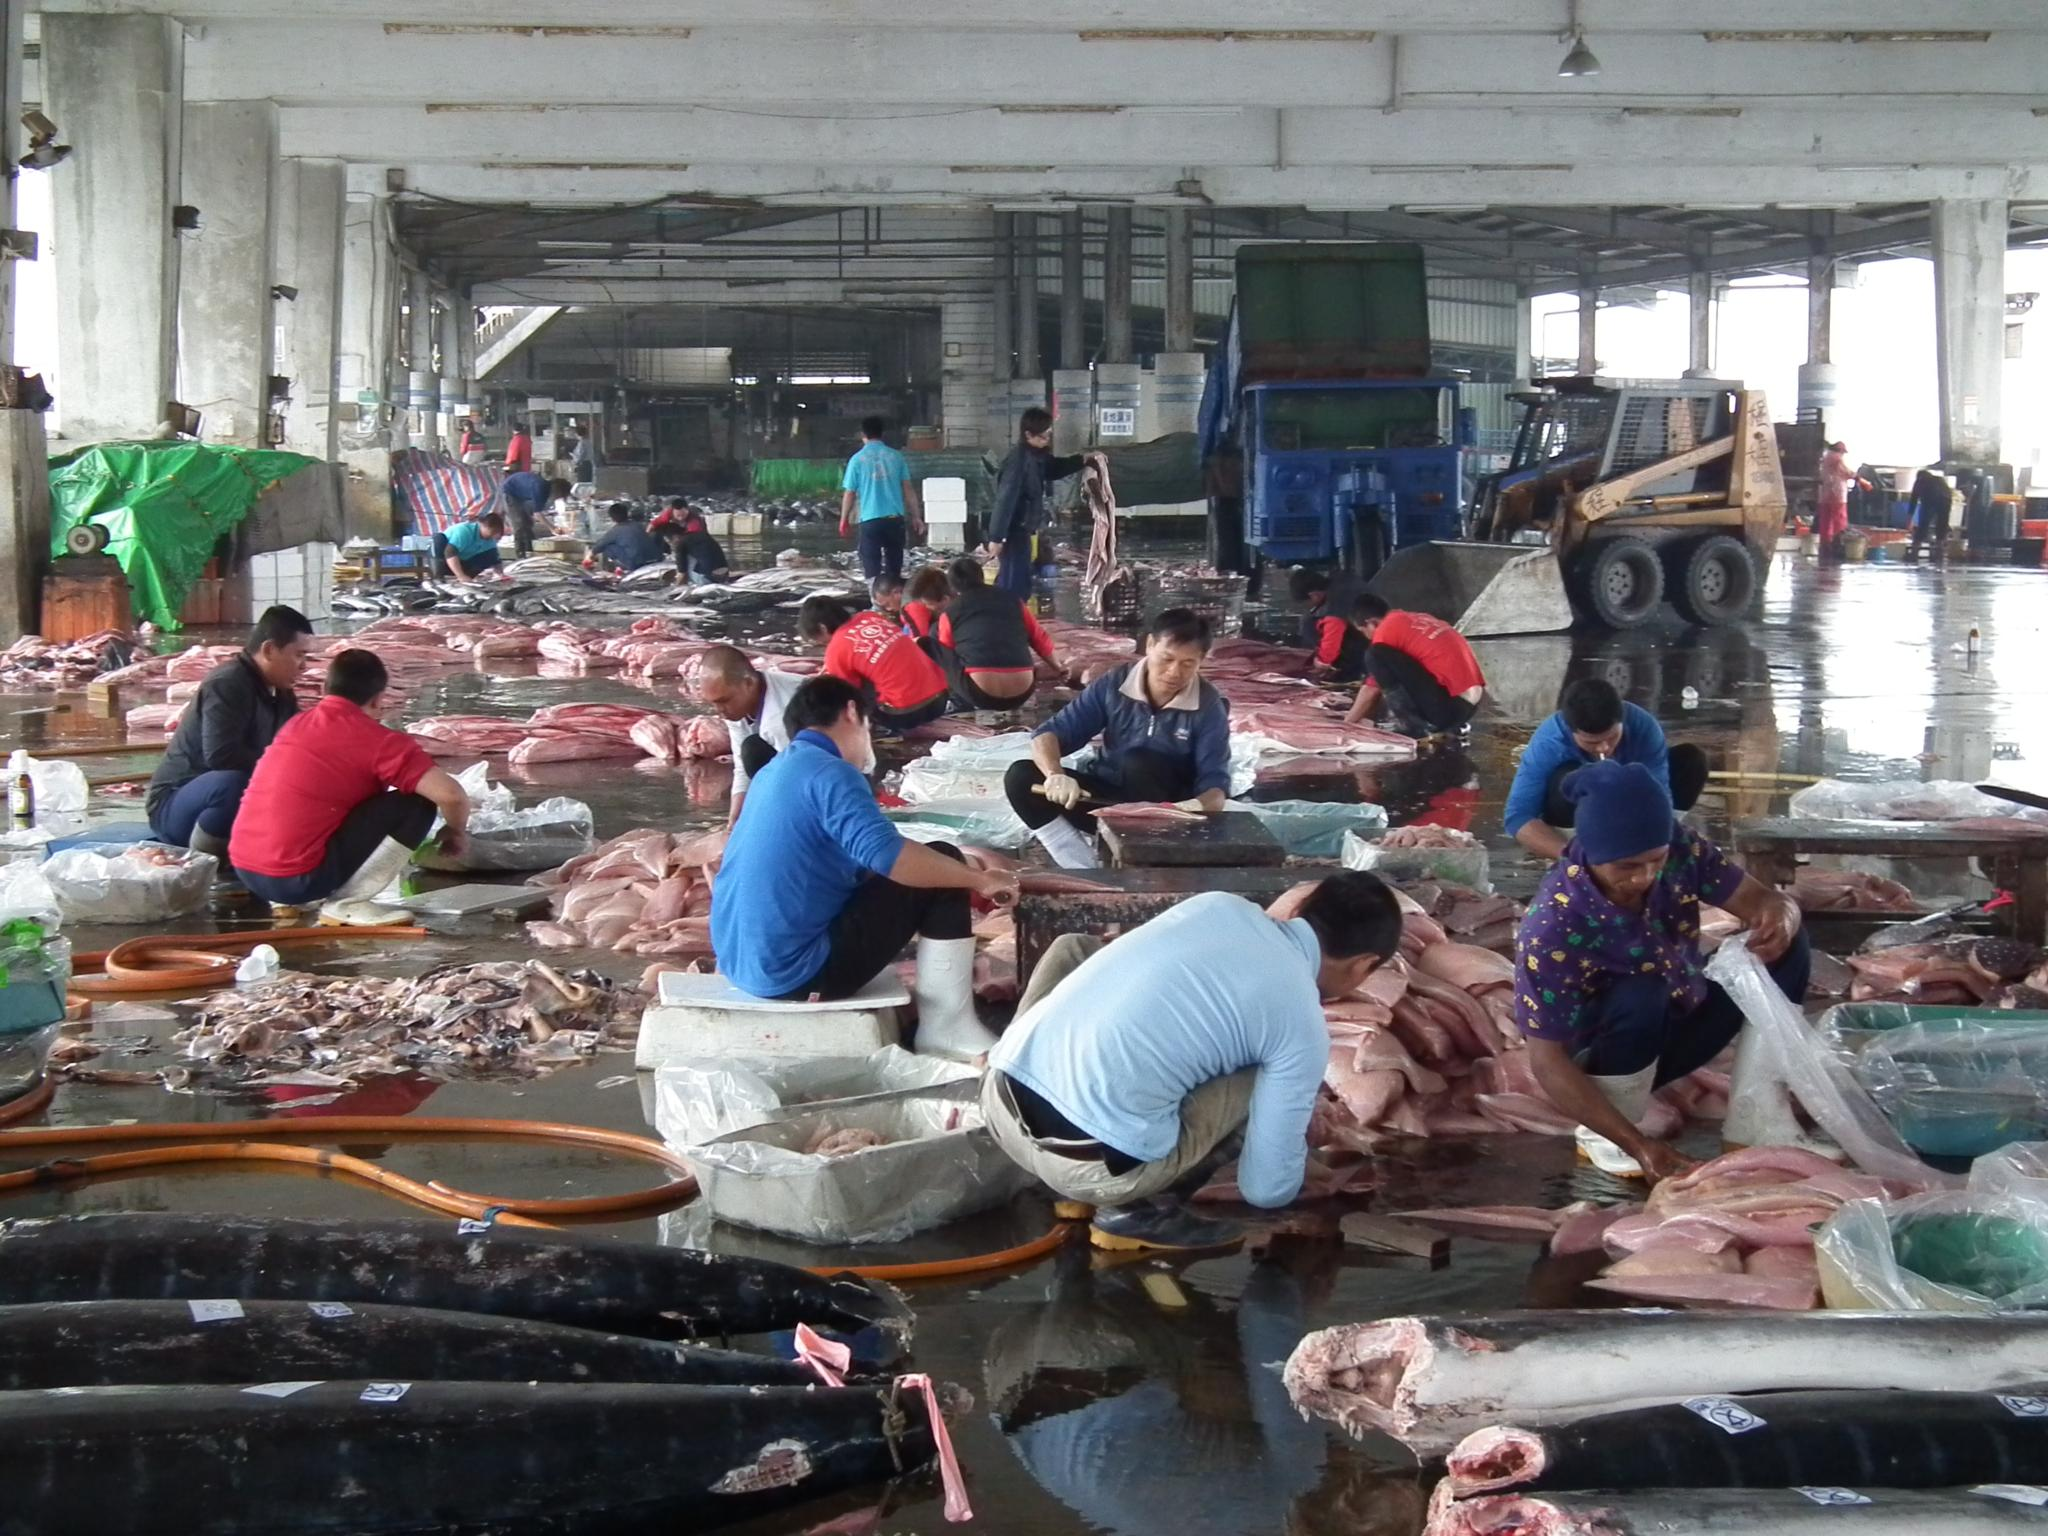 Workers clean fish at Donggang Port (Photo by Michael Turton)